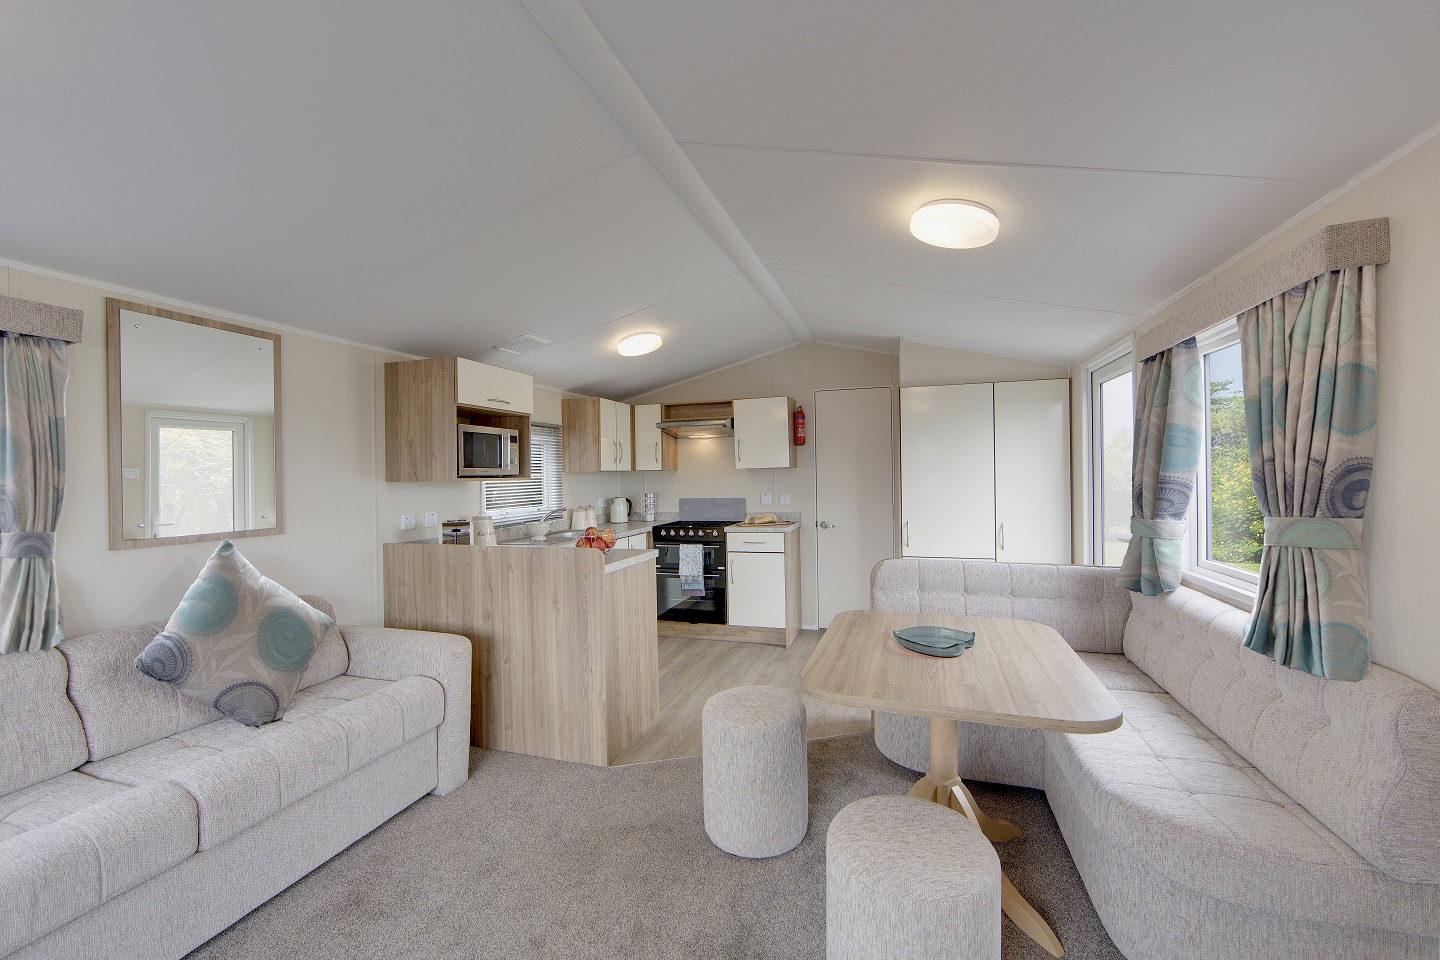 static caravan for sale Seahouses Northumberland ideal caravans Large Image 2